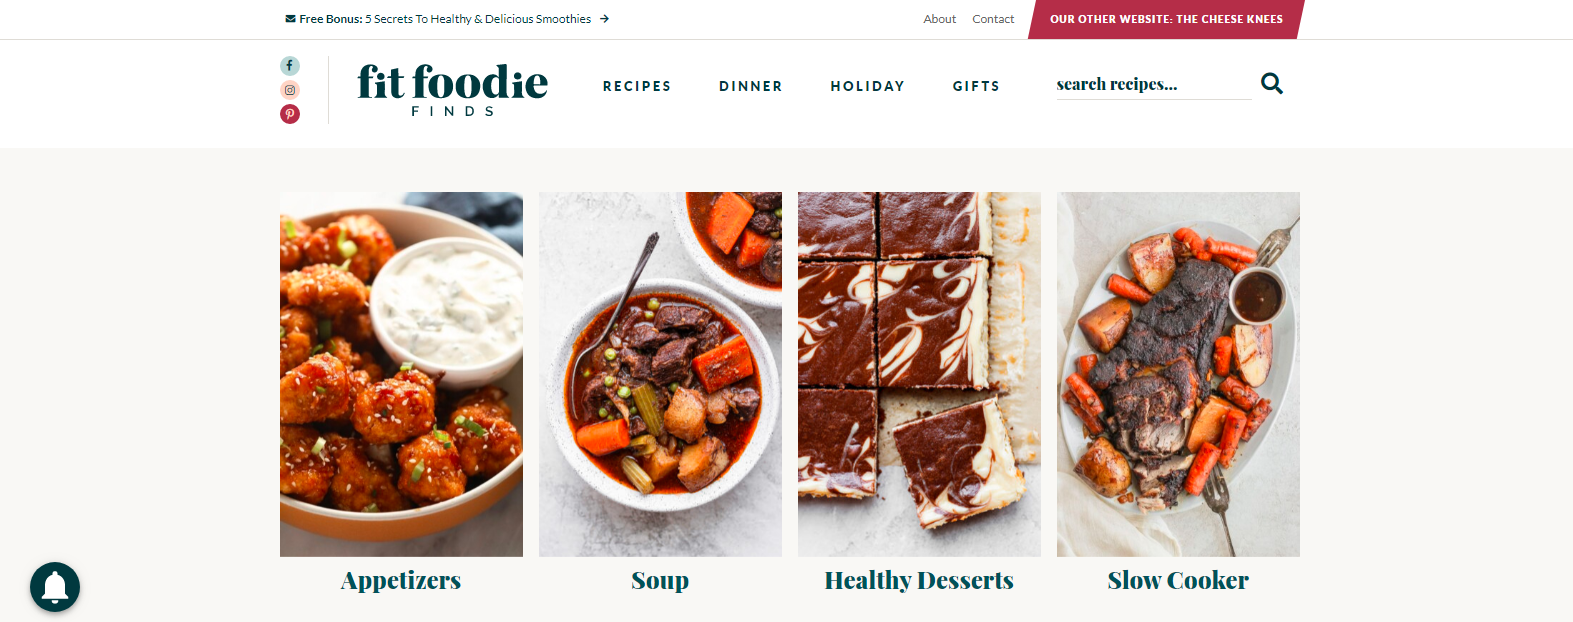 Fit Foodie Finds: Health Blog and Website